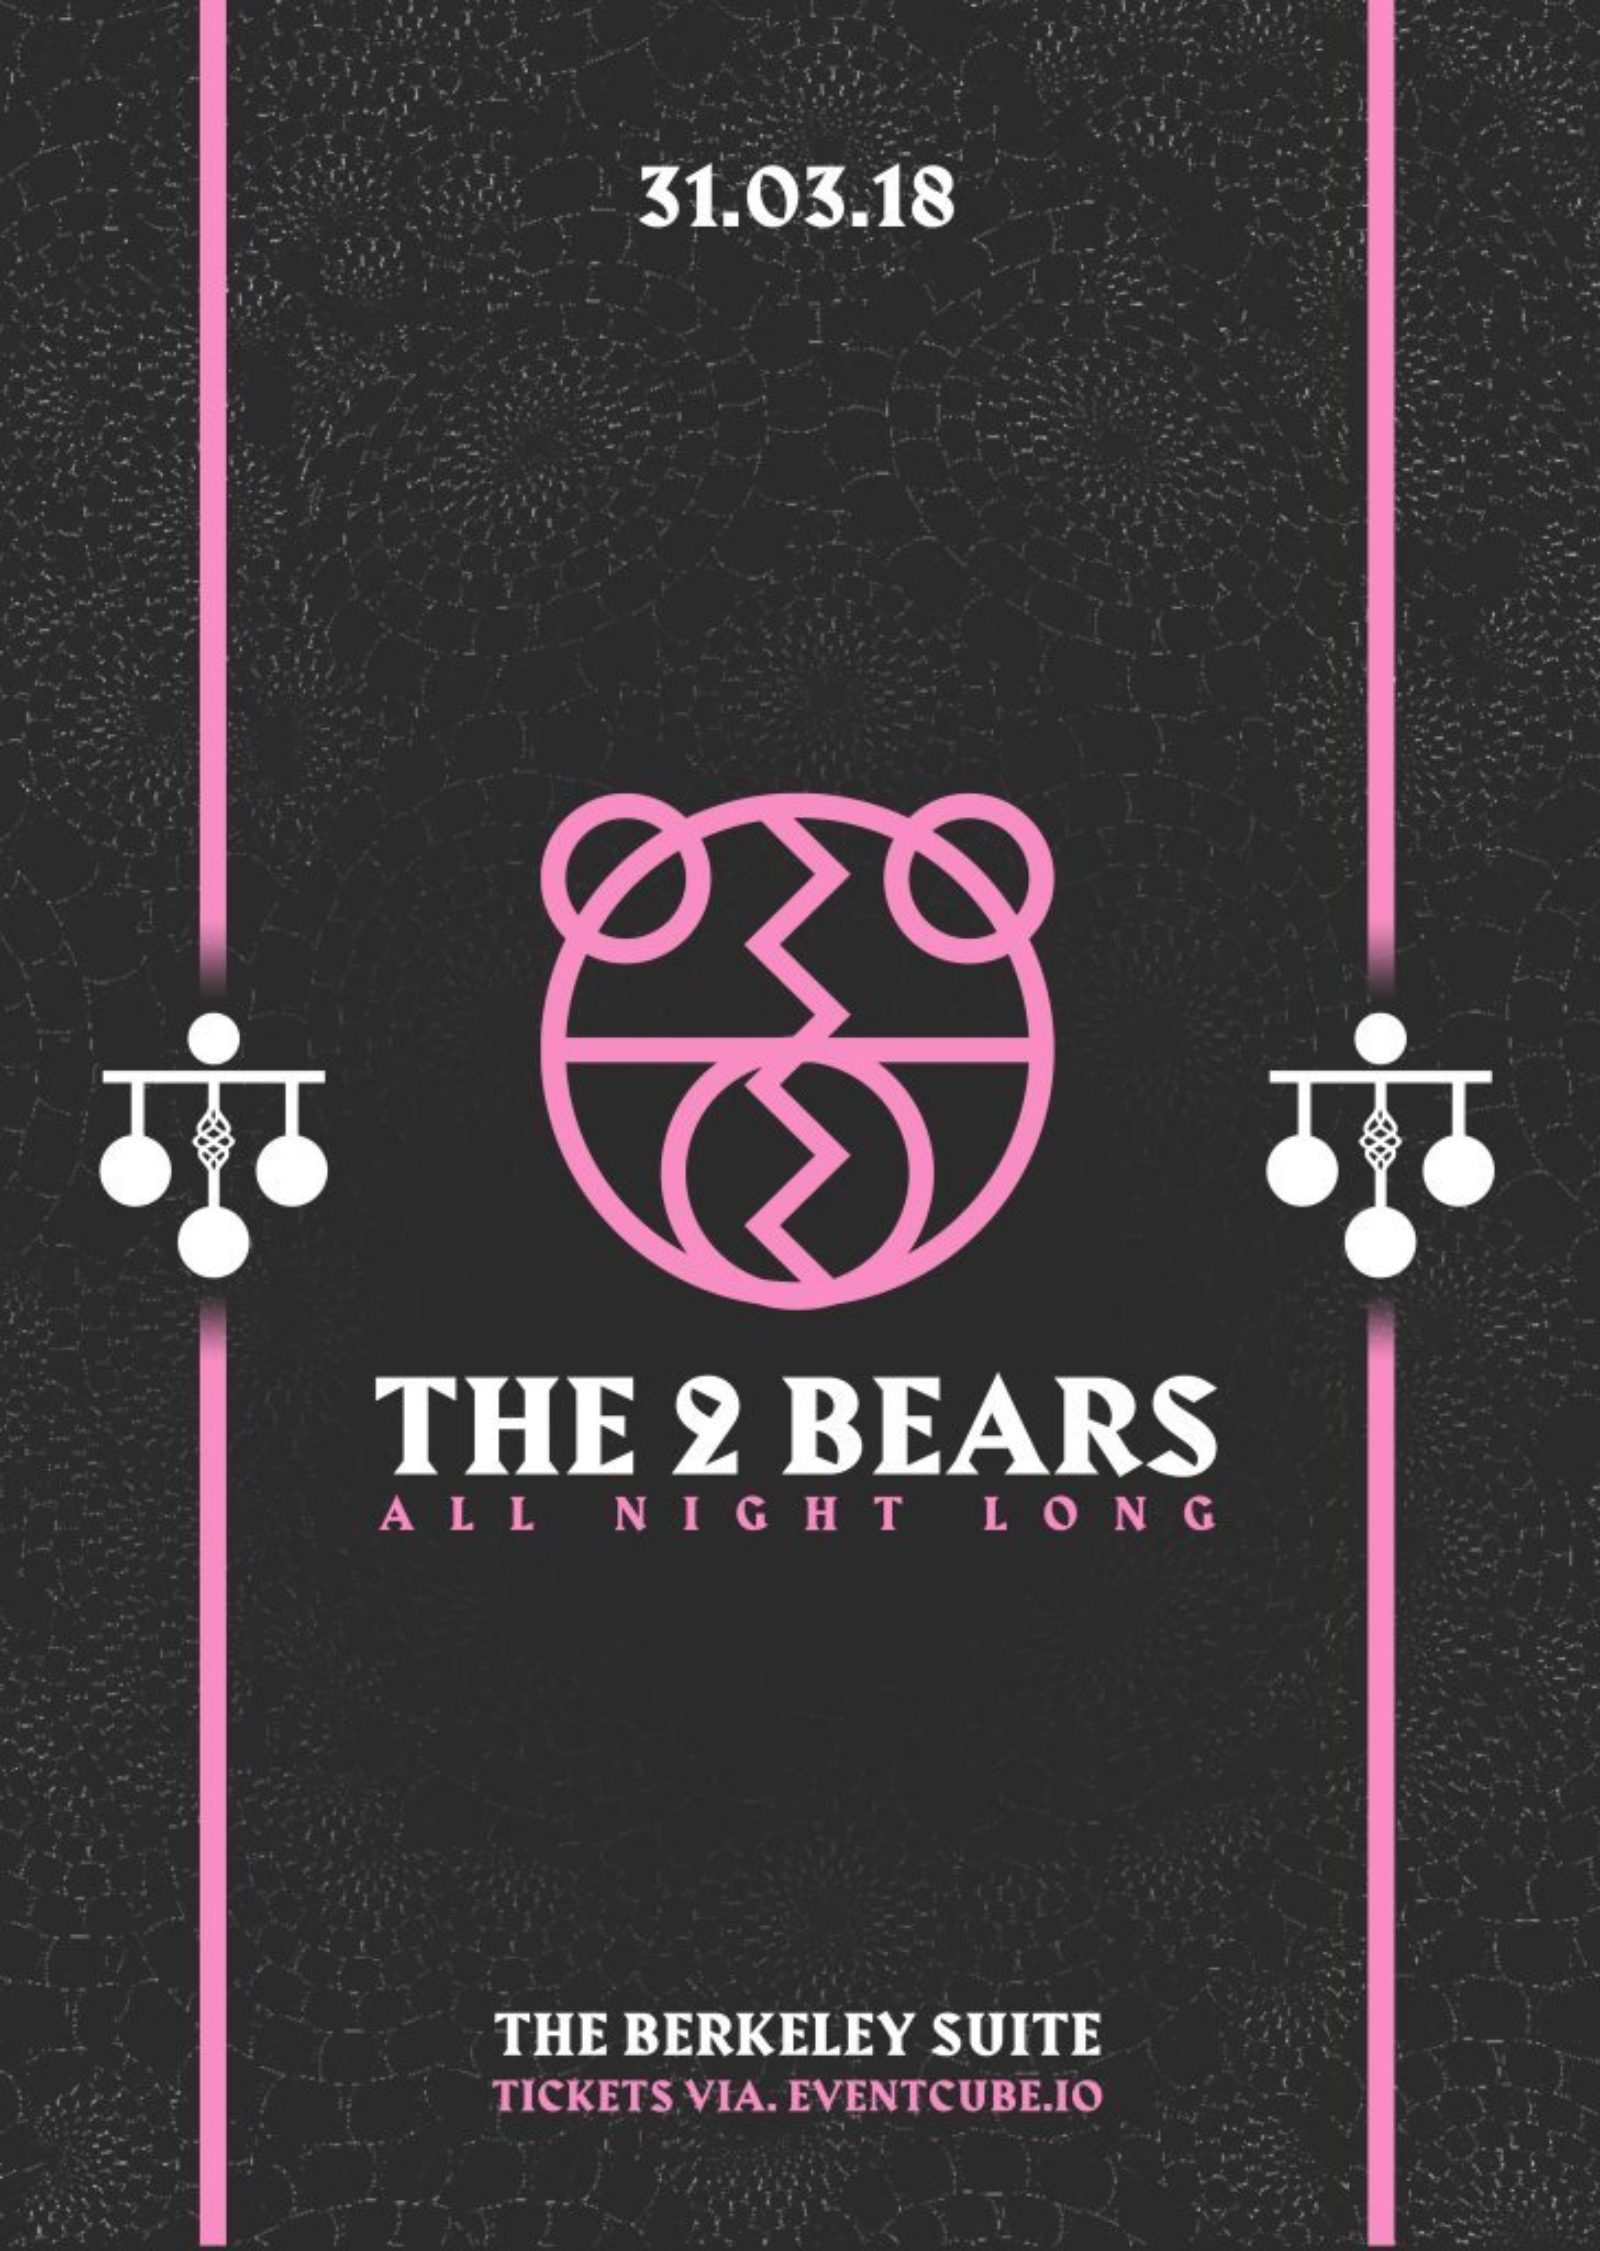 THE 2 BEARS (All Night Long)